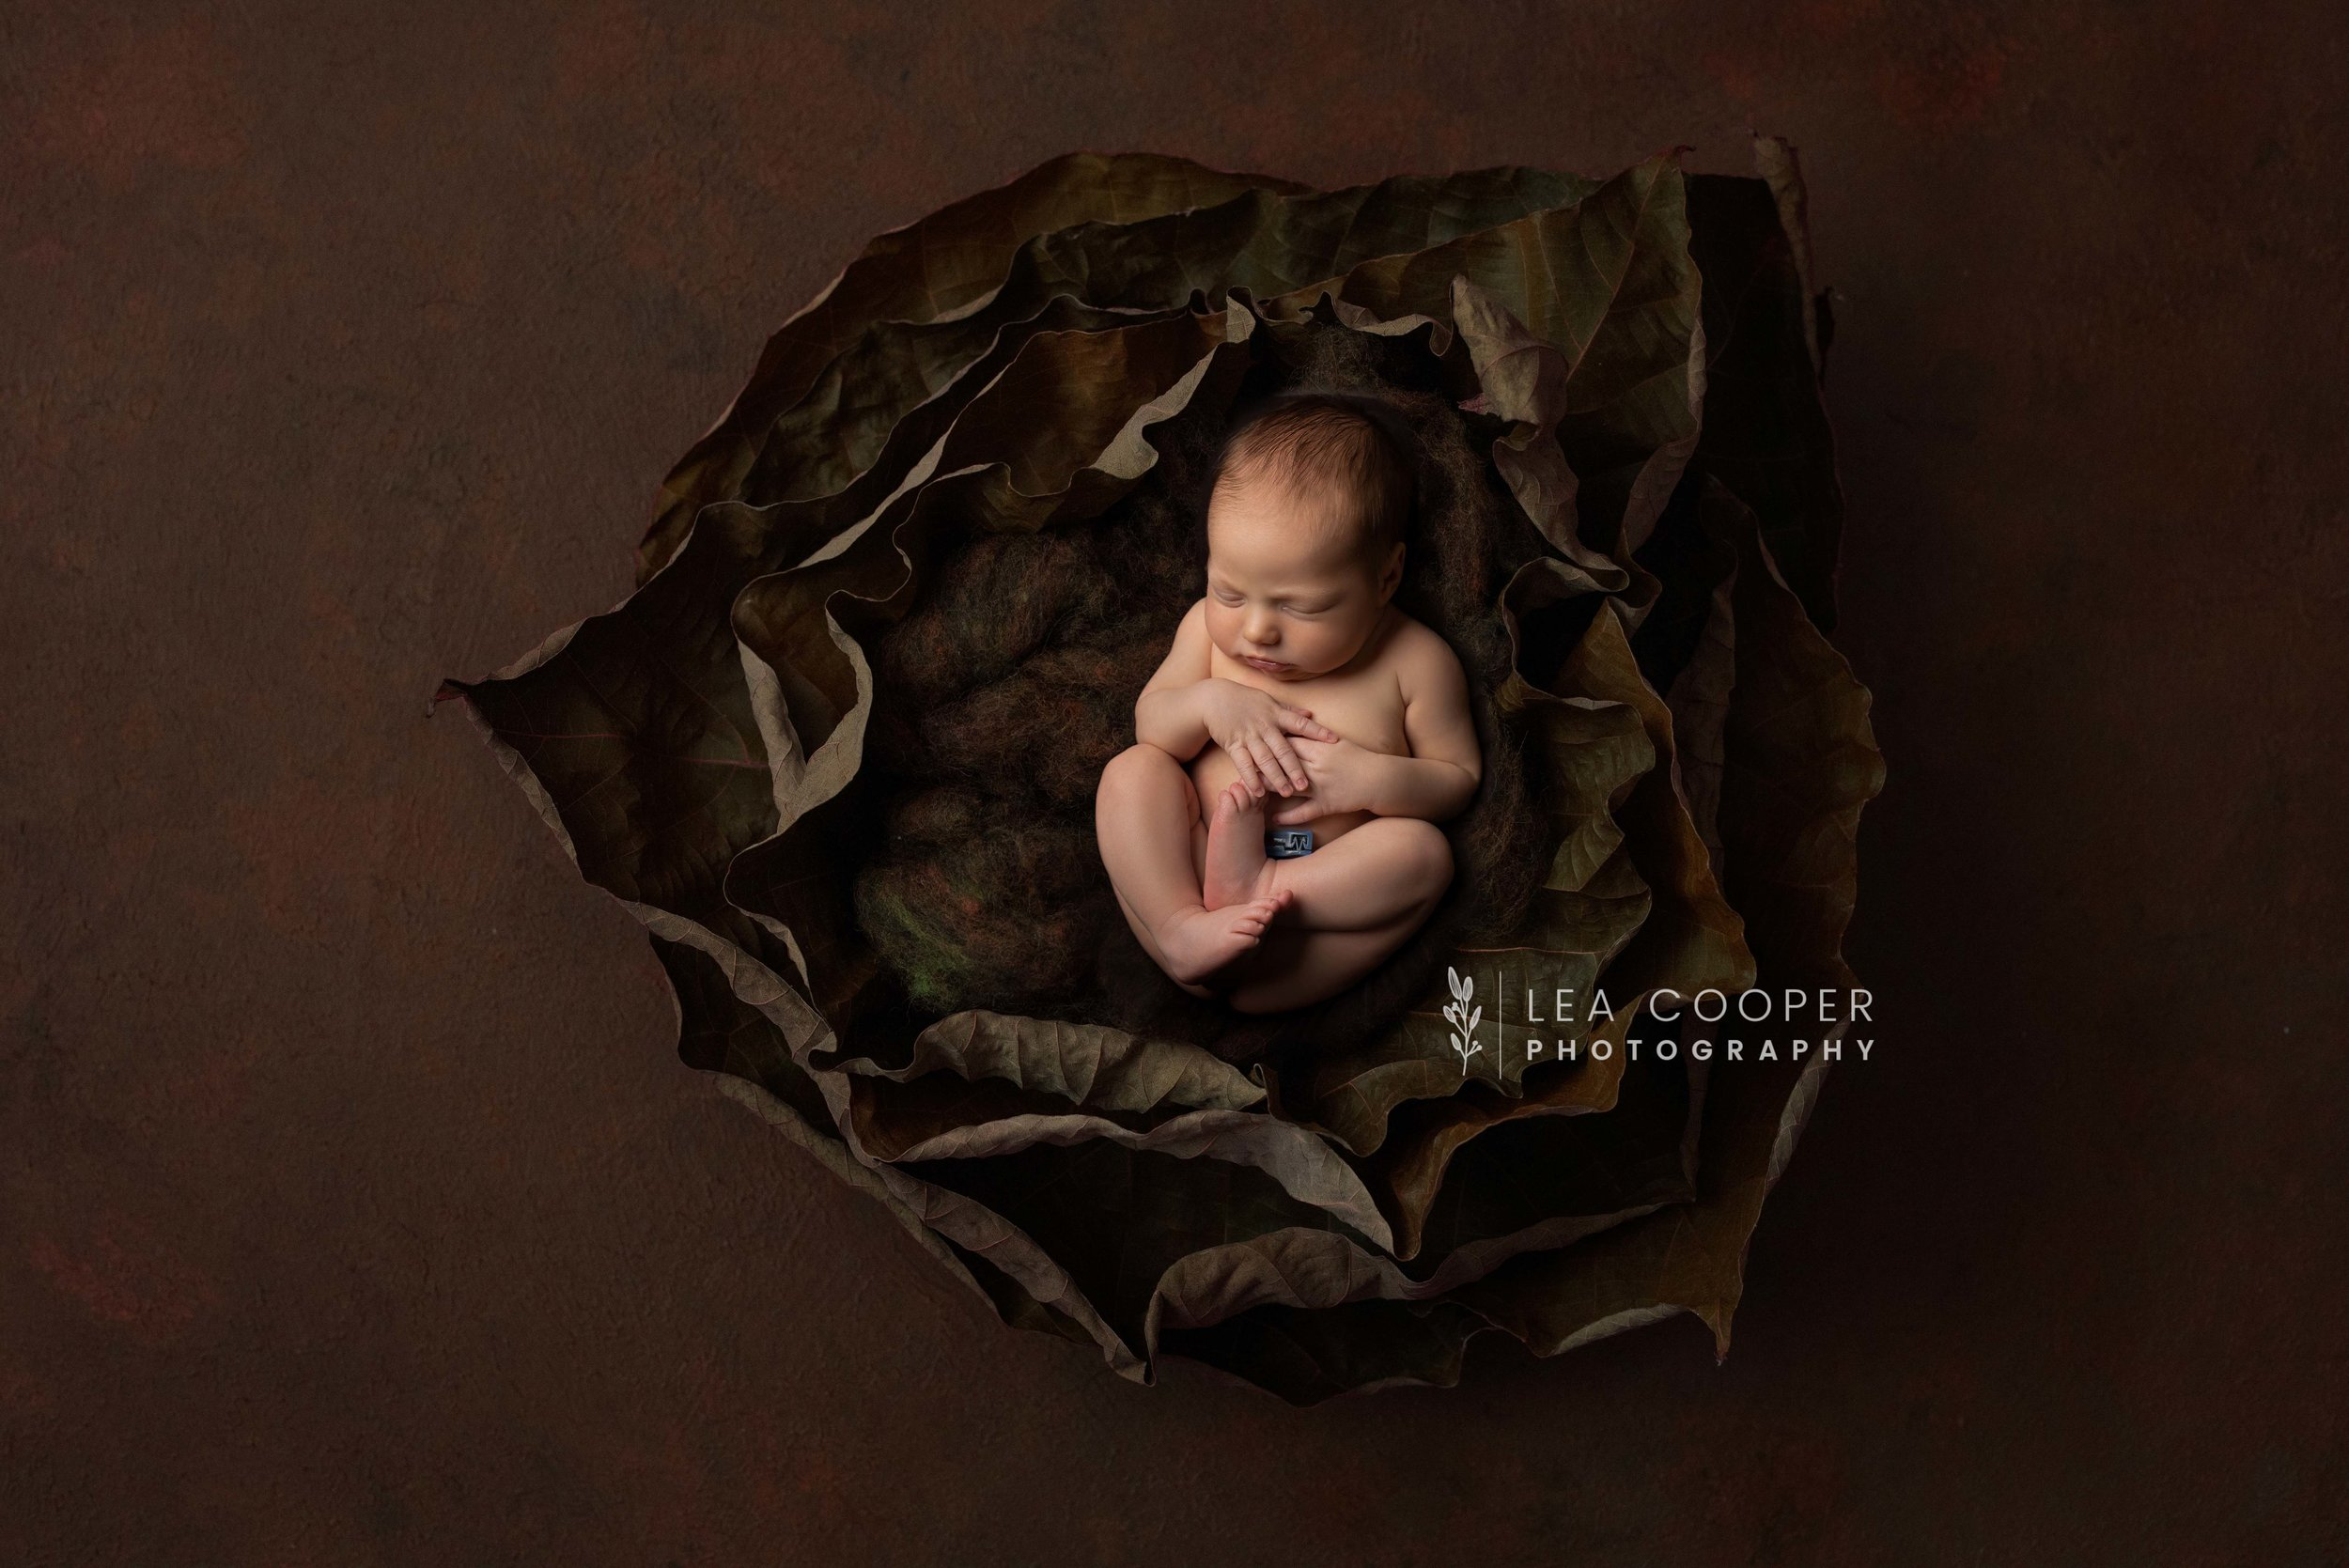 newborn-photography-willenhall-lea-cooper-photography-wolverhampton-baby-photographer-birmingham-west-midlands-uk-oliver--1.jpg